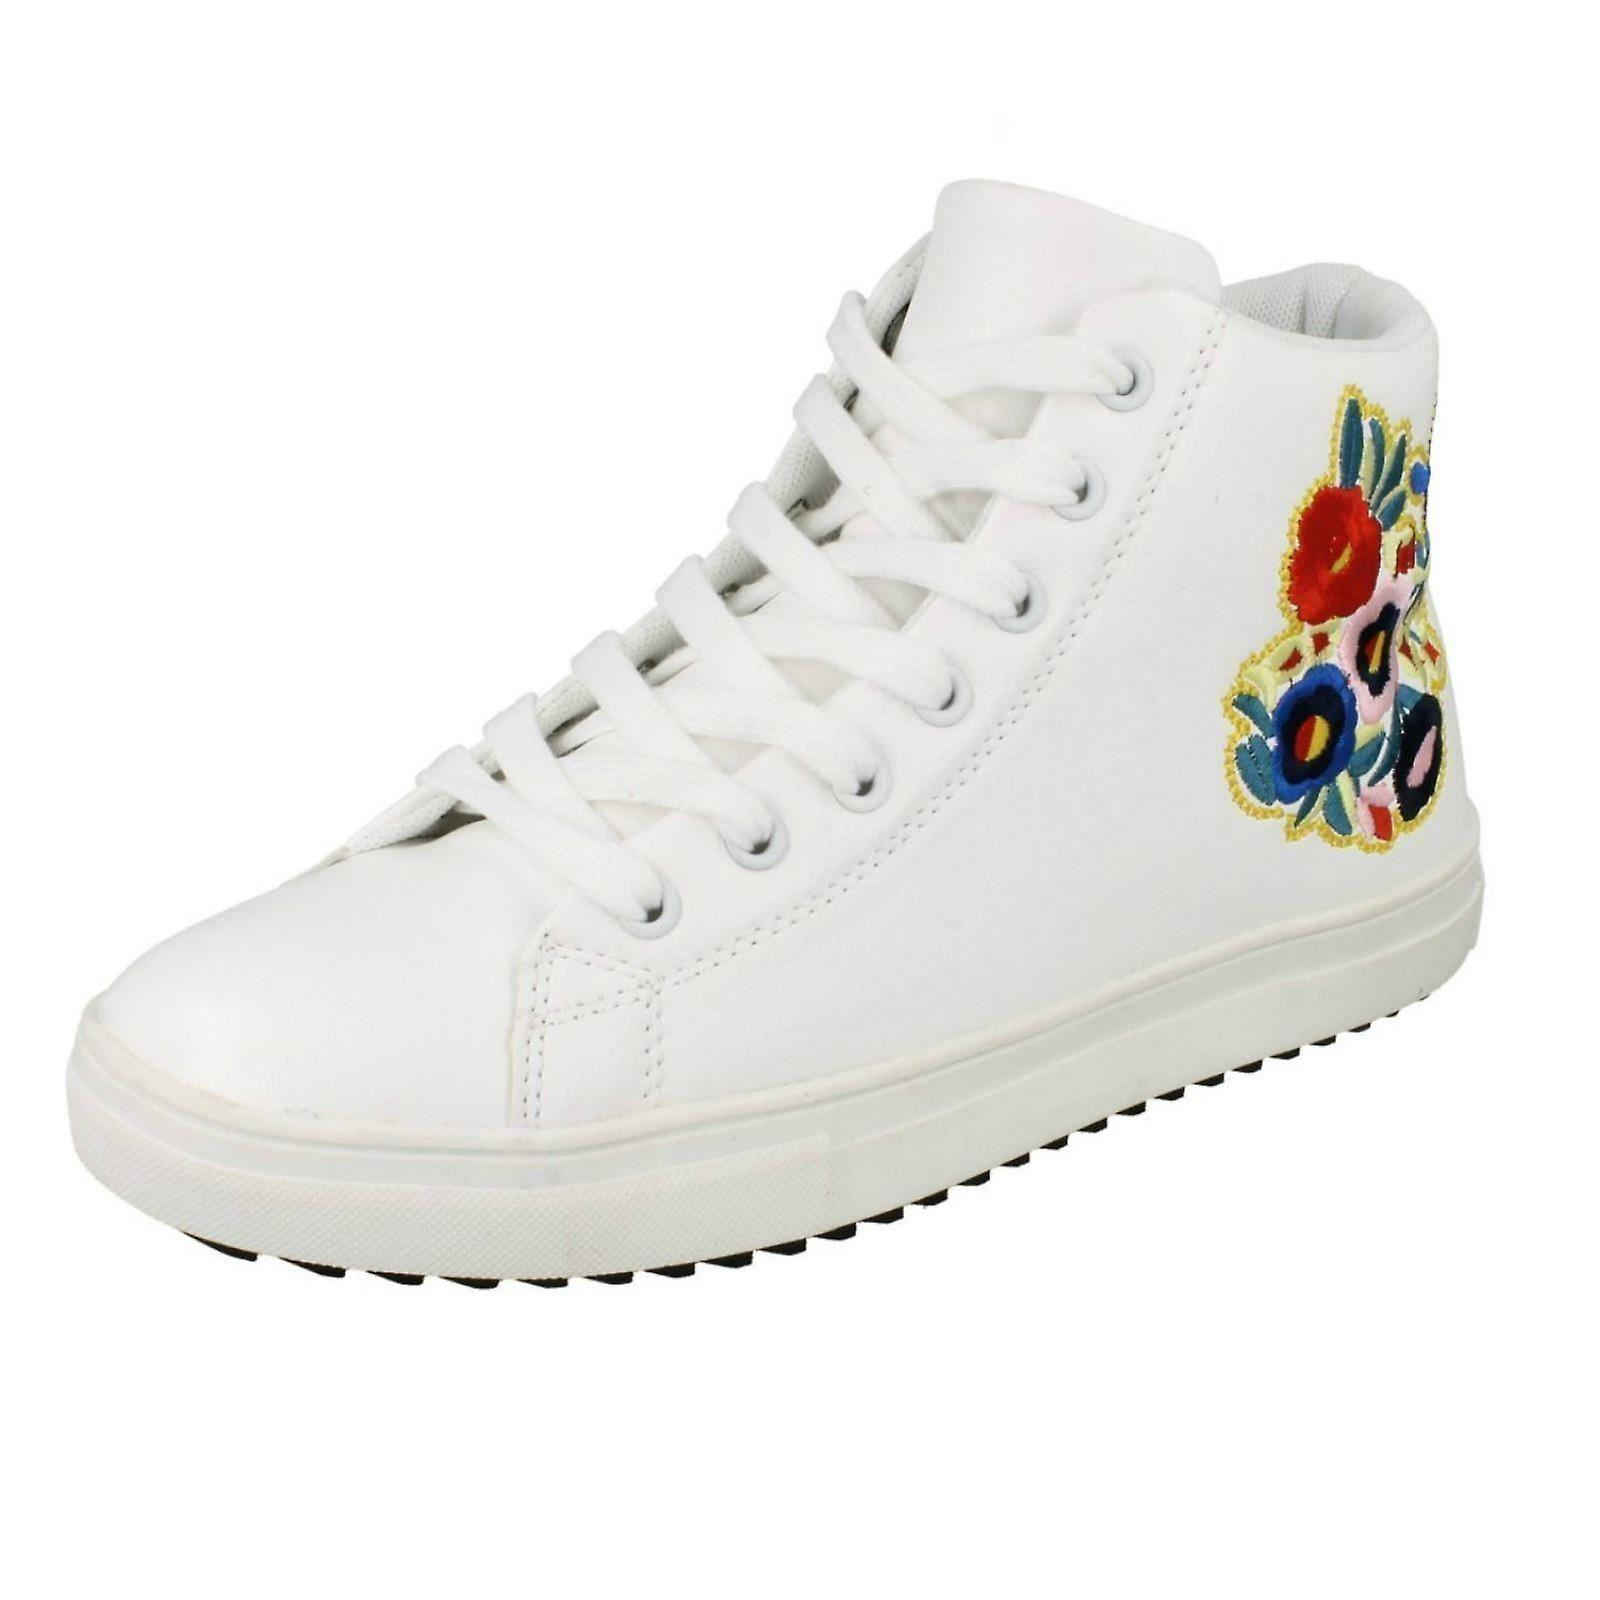 Ladies Spot On Hi-Top Trainer Boots F4396 - White Synthetic - UK Size 7 - EU Size 40 - US Size 9